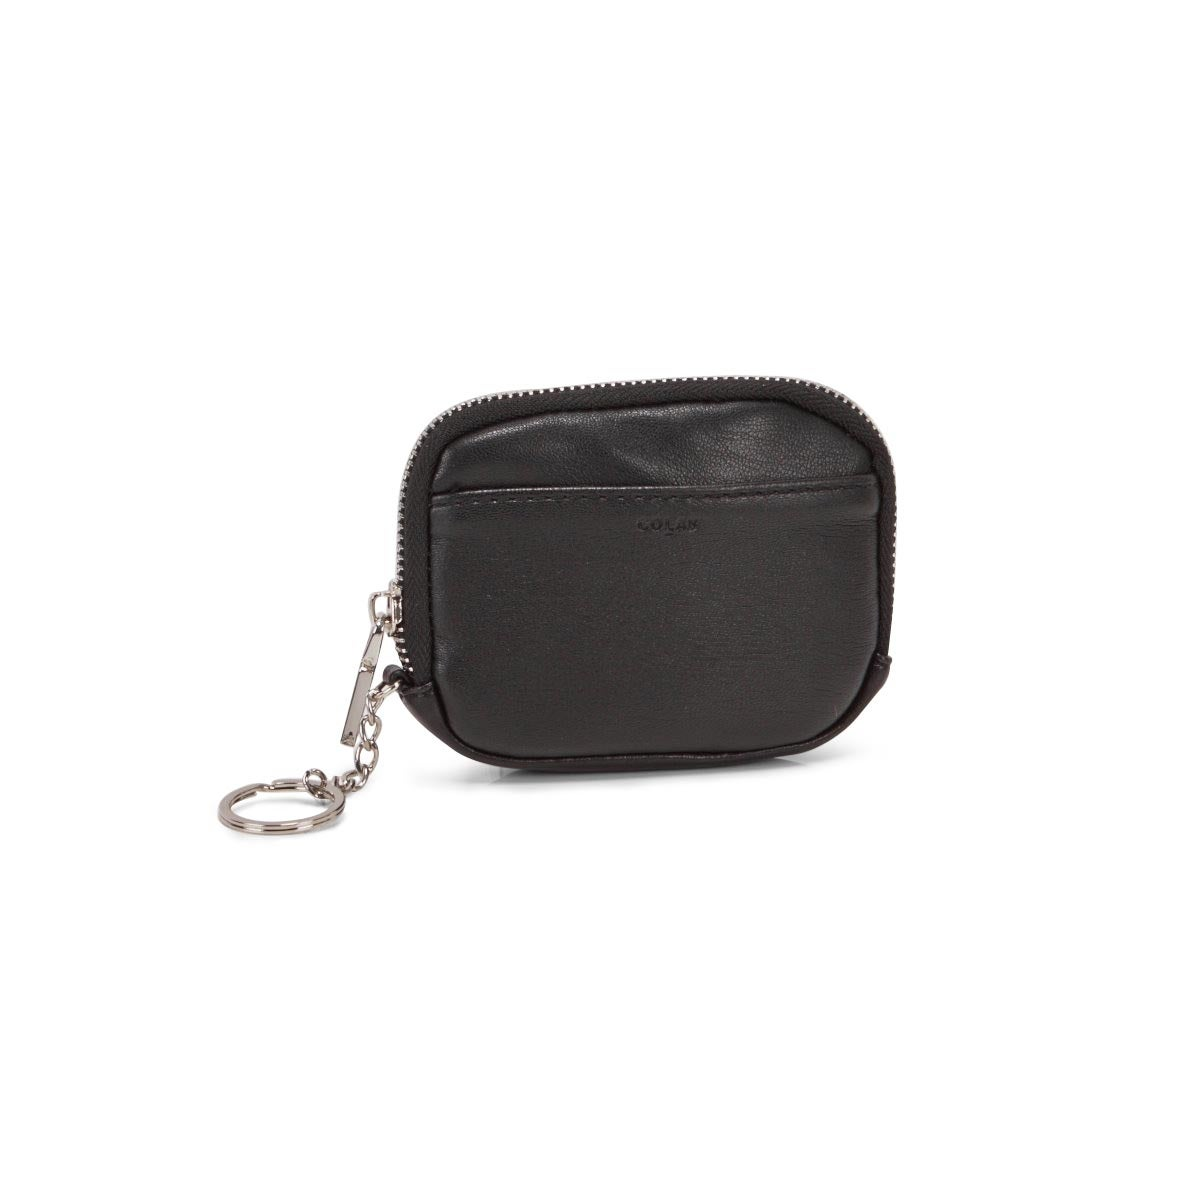 Women's black zip up wallet